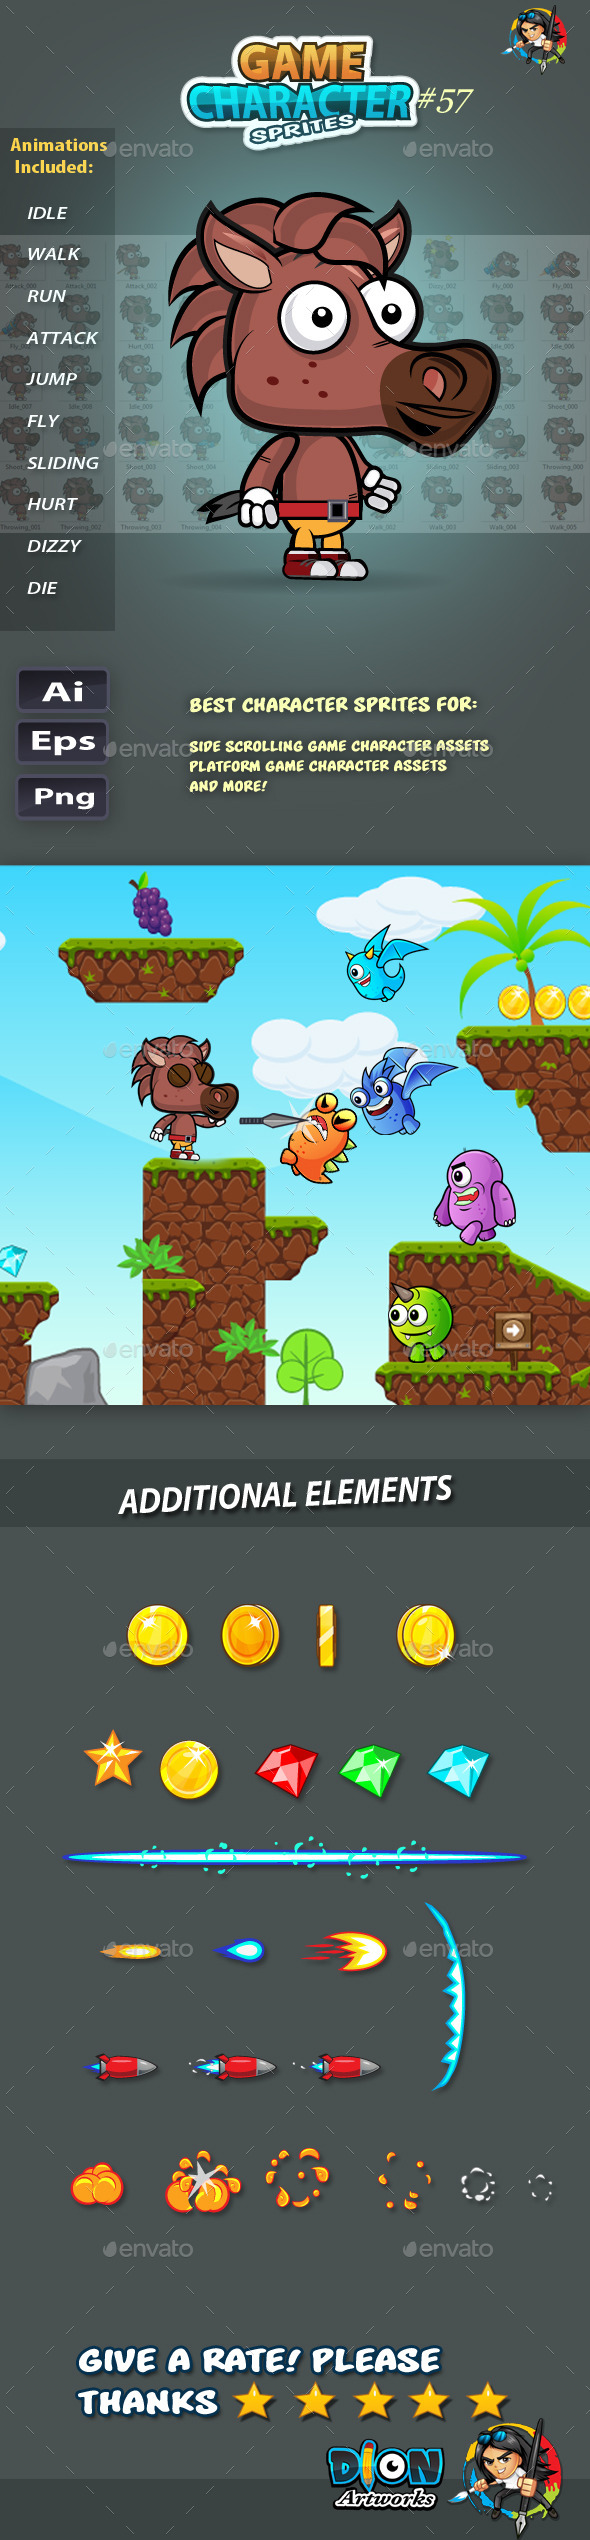 GraphicRiver Horse 2D Game Character Sprites 57 11813483